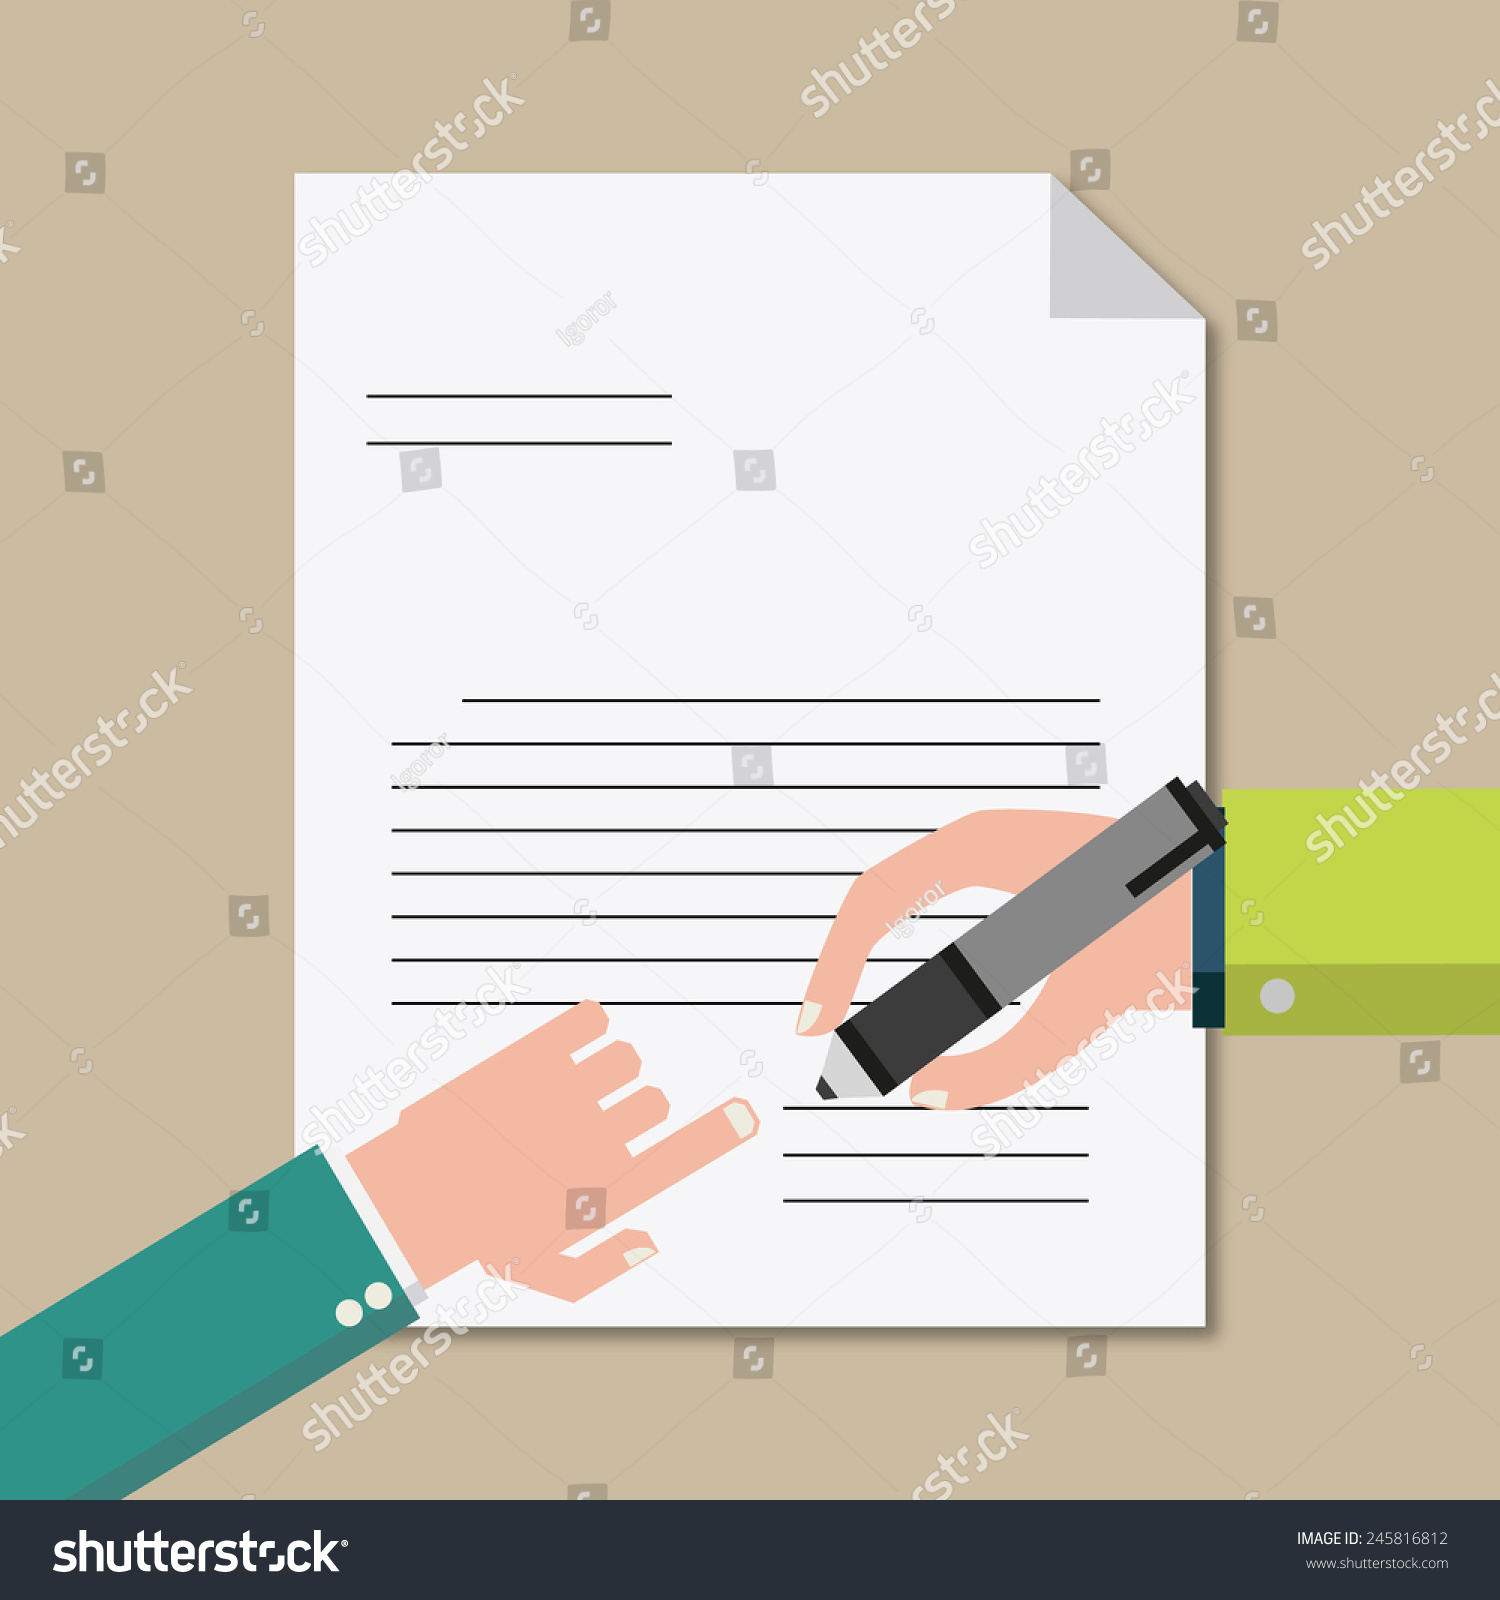 How To Write A Proposal Essay Example Businessman Signed Business Letter Contract Essay Writing Format Stock  Vector Businessman Hand Sign Business Contract Paper Topics For Essays In English also How To Write An Essay Thesis Sign Business Letter Free Sample Business Proposal Letter Template Healthy Living Essay